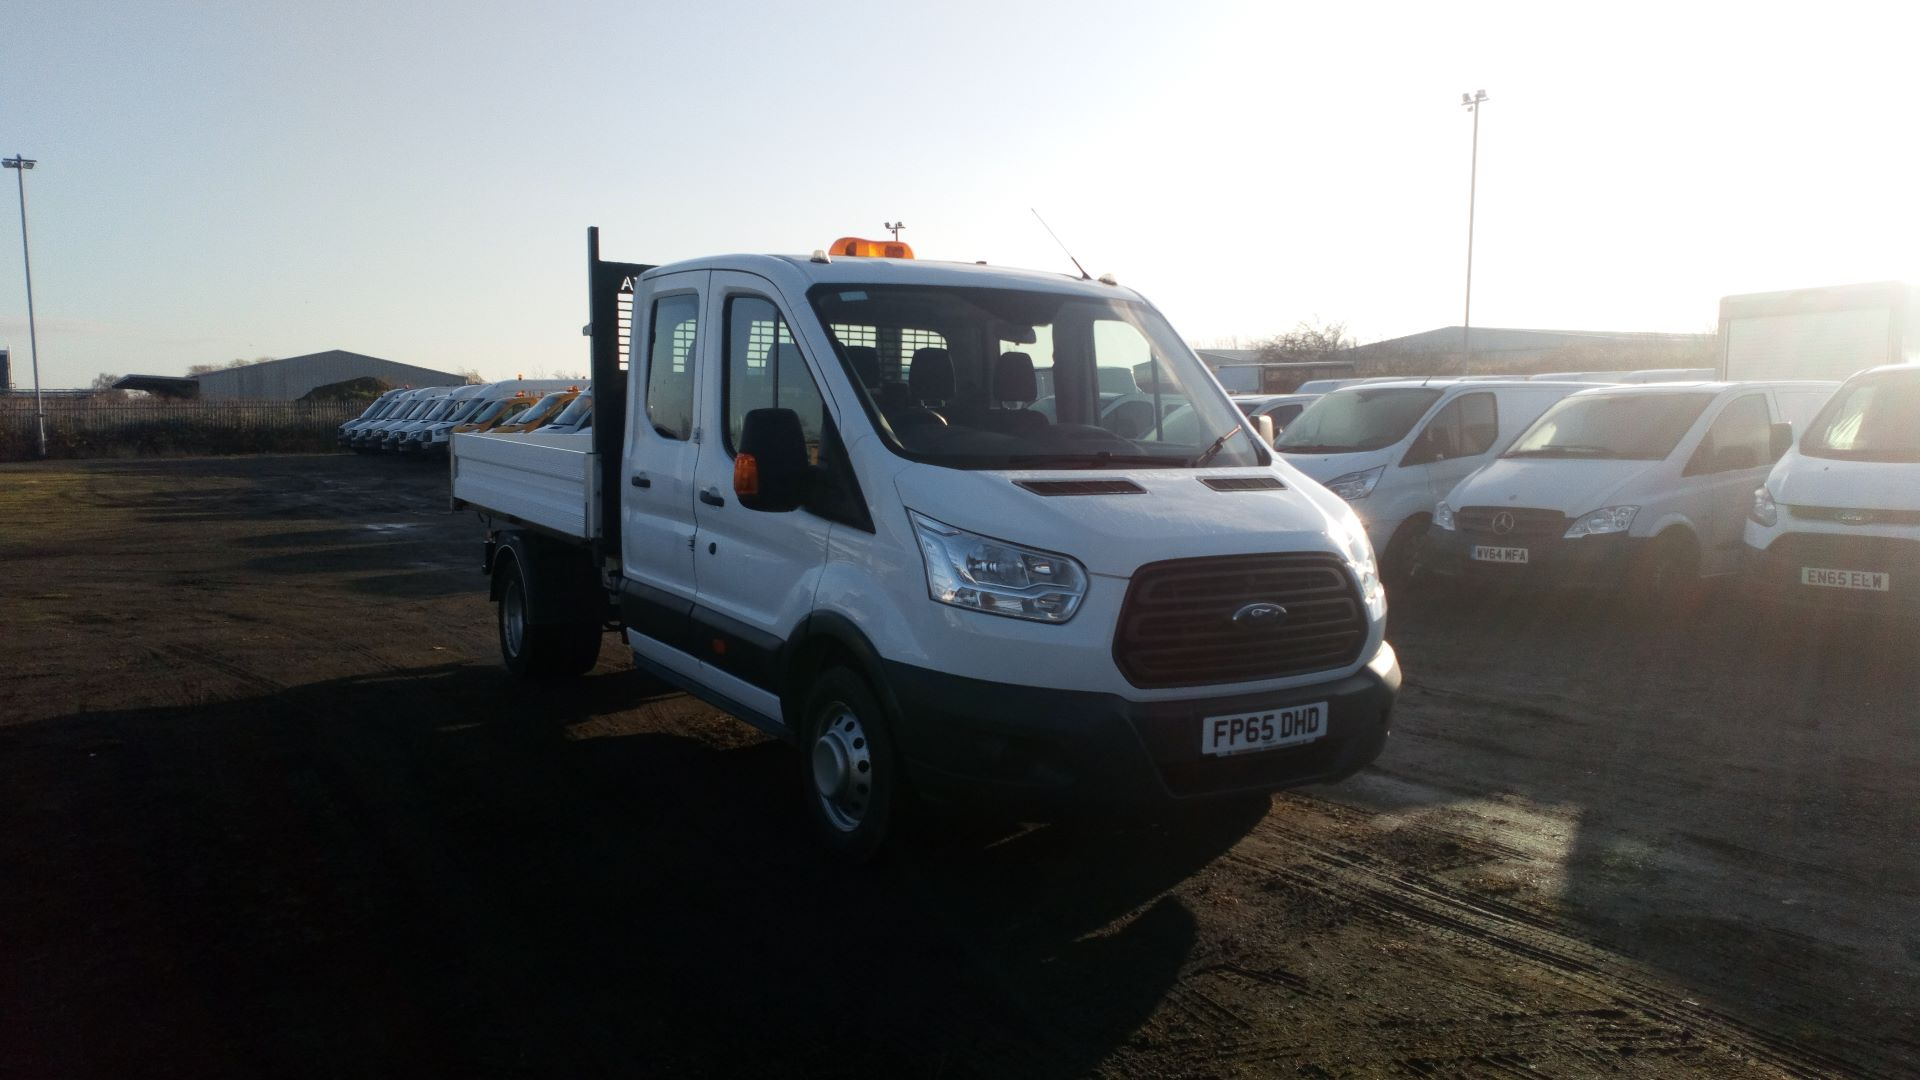 2015 Ford Transit 2.2 Tdci 125Ps Double Cab Chassis (FP65DHD)